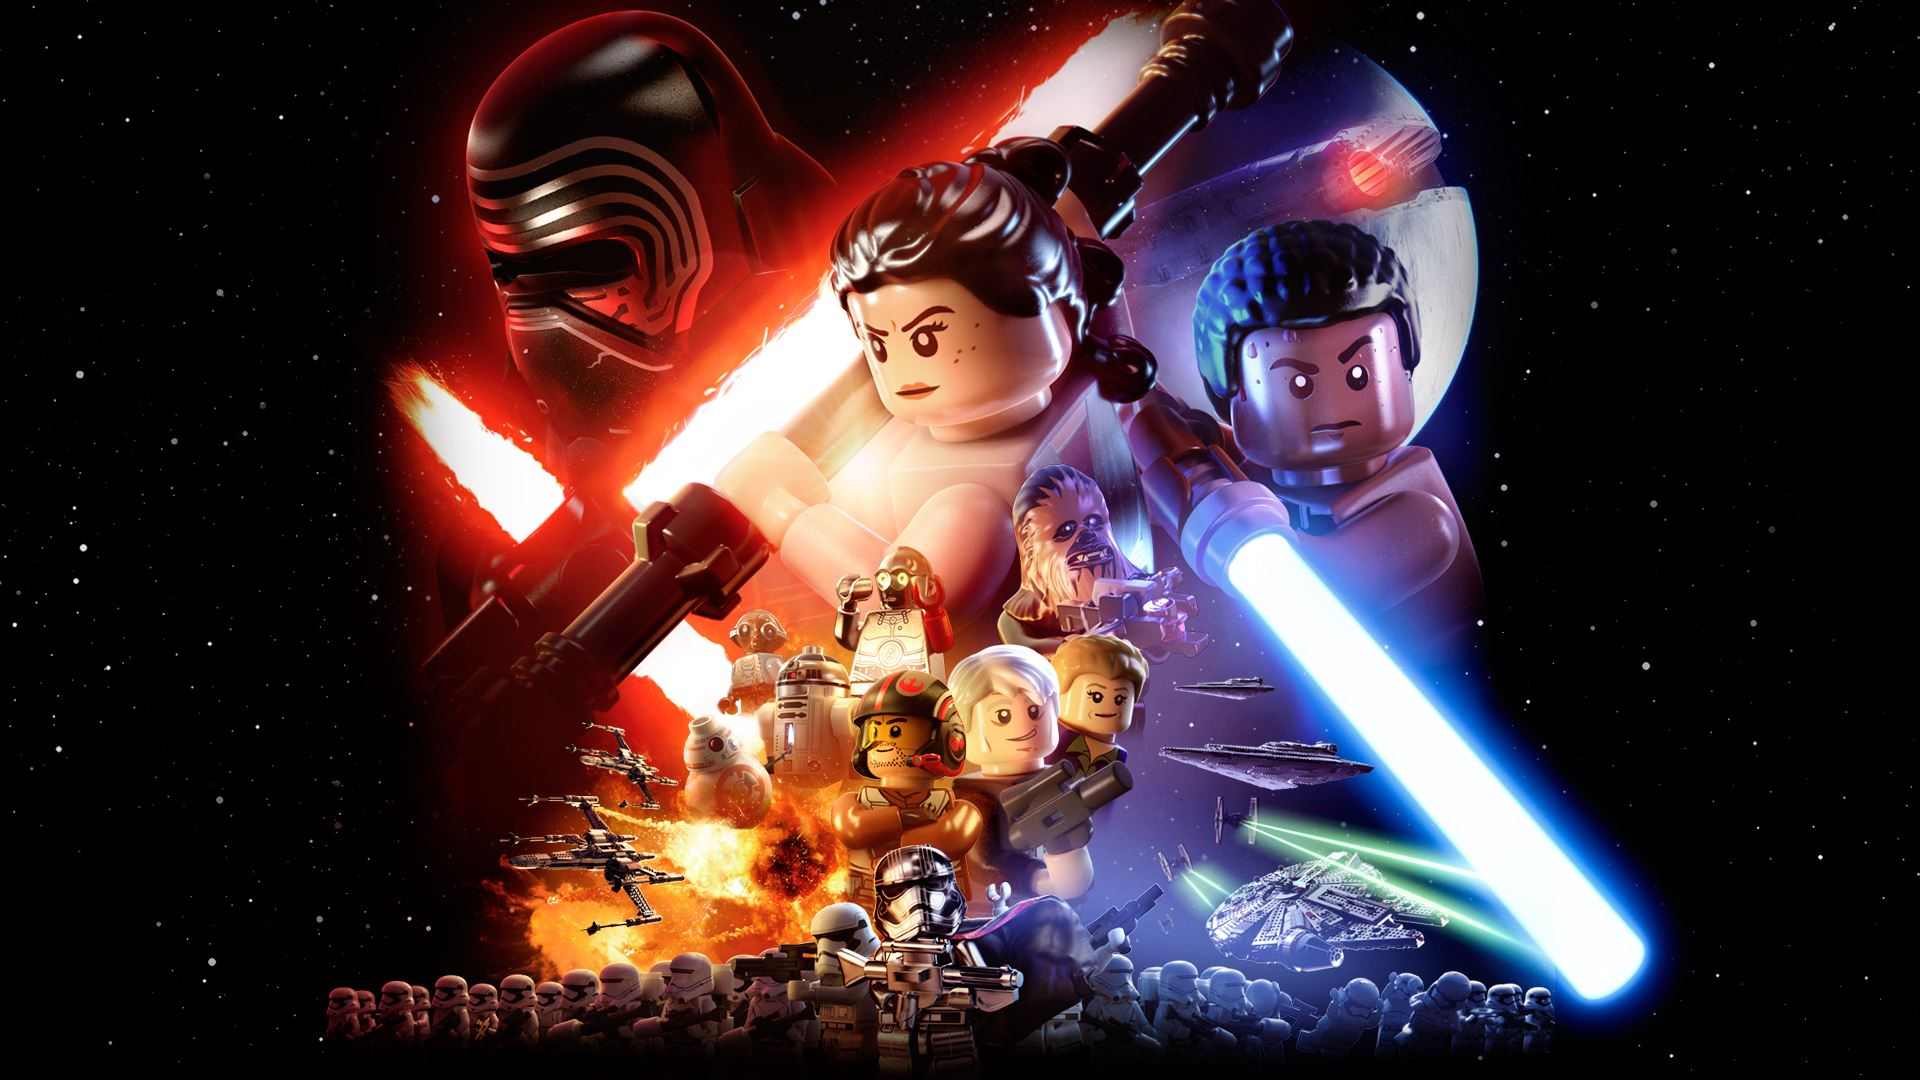 Lego Star Wars Wallpapers Top Free Lego Star Wars Backgrounds Wallpaperaccess